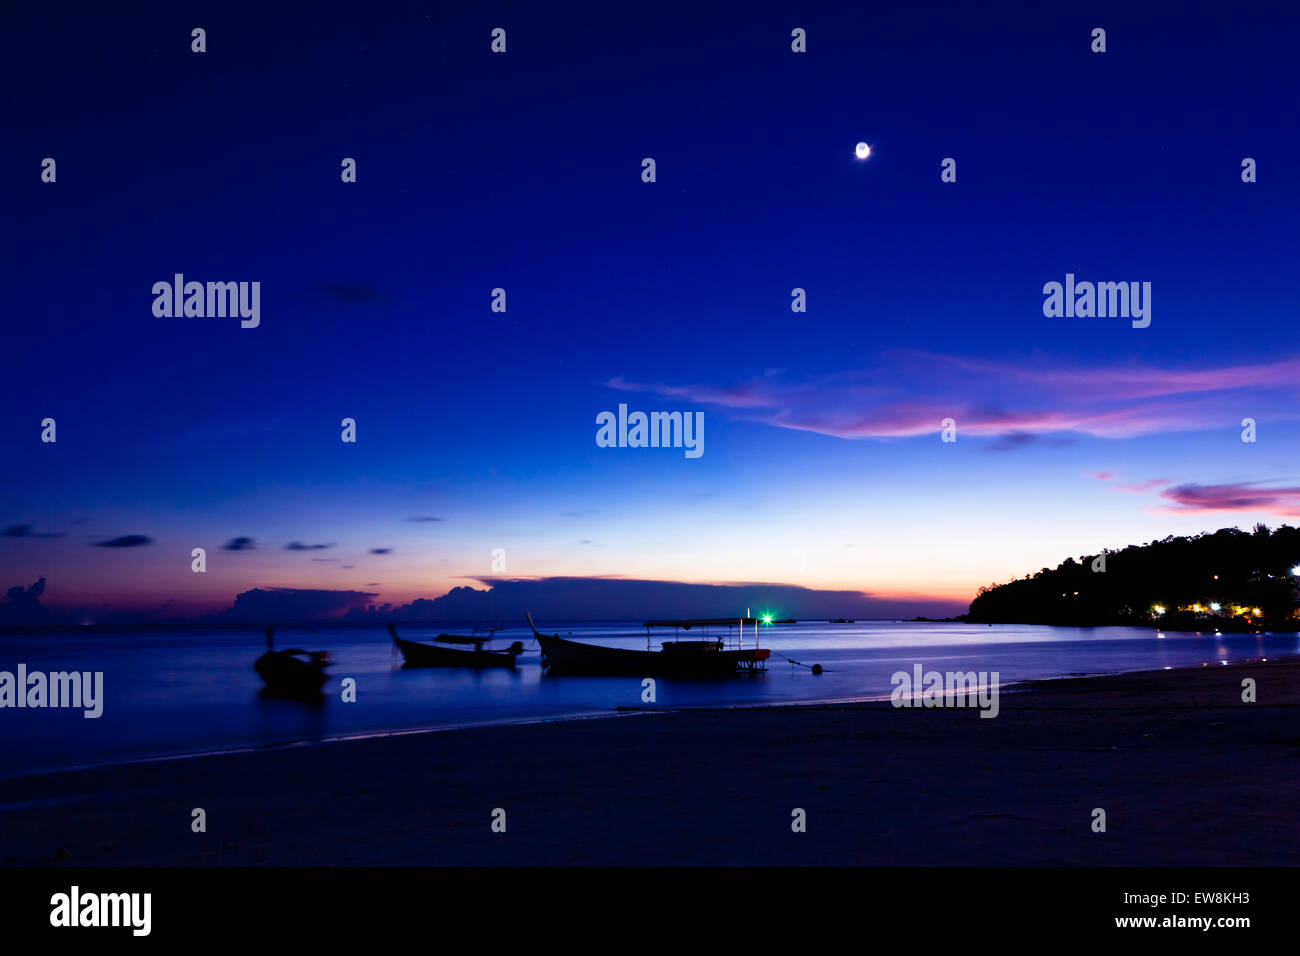 Night on the beach of Koh Lipe Island, Thailand. - Stock Image